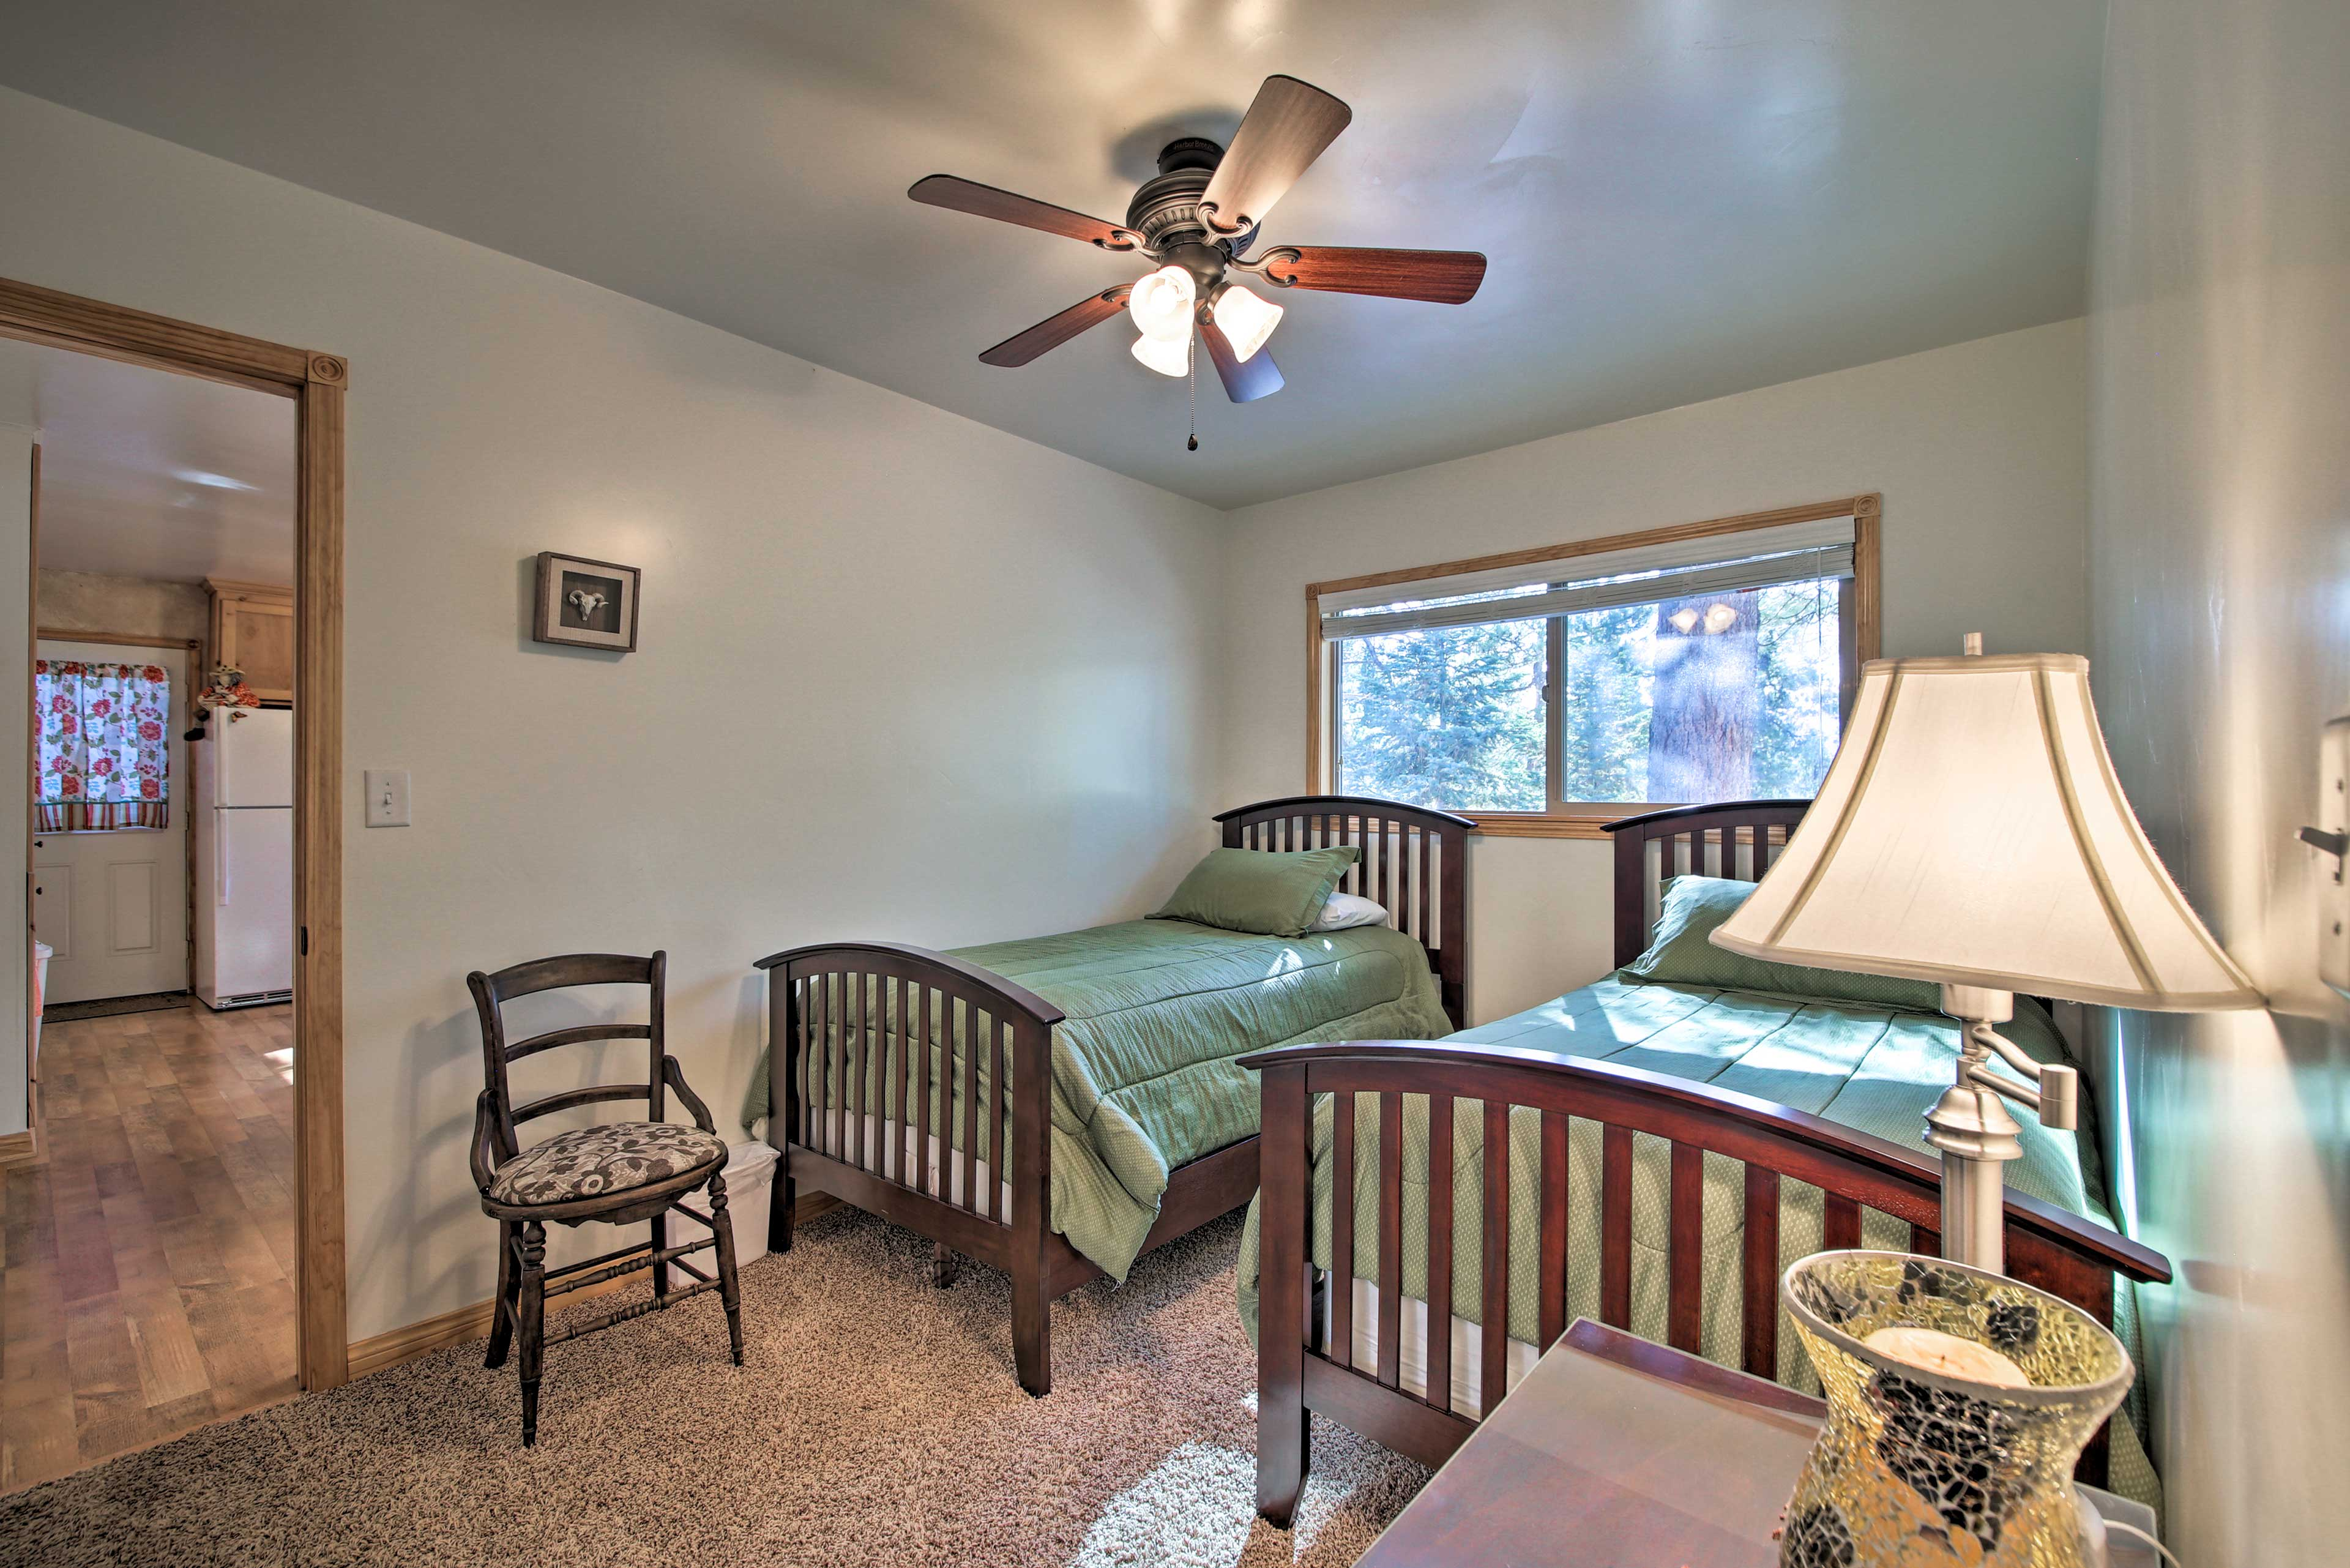 The third bedroom also features 2 twin beds.